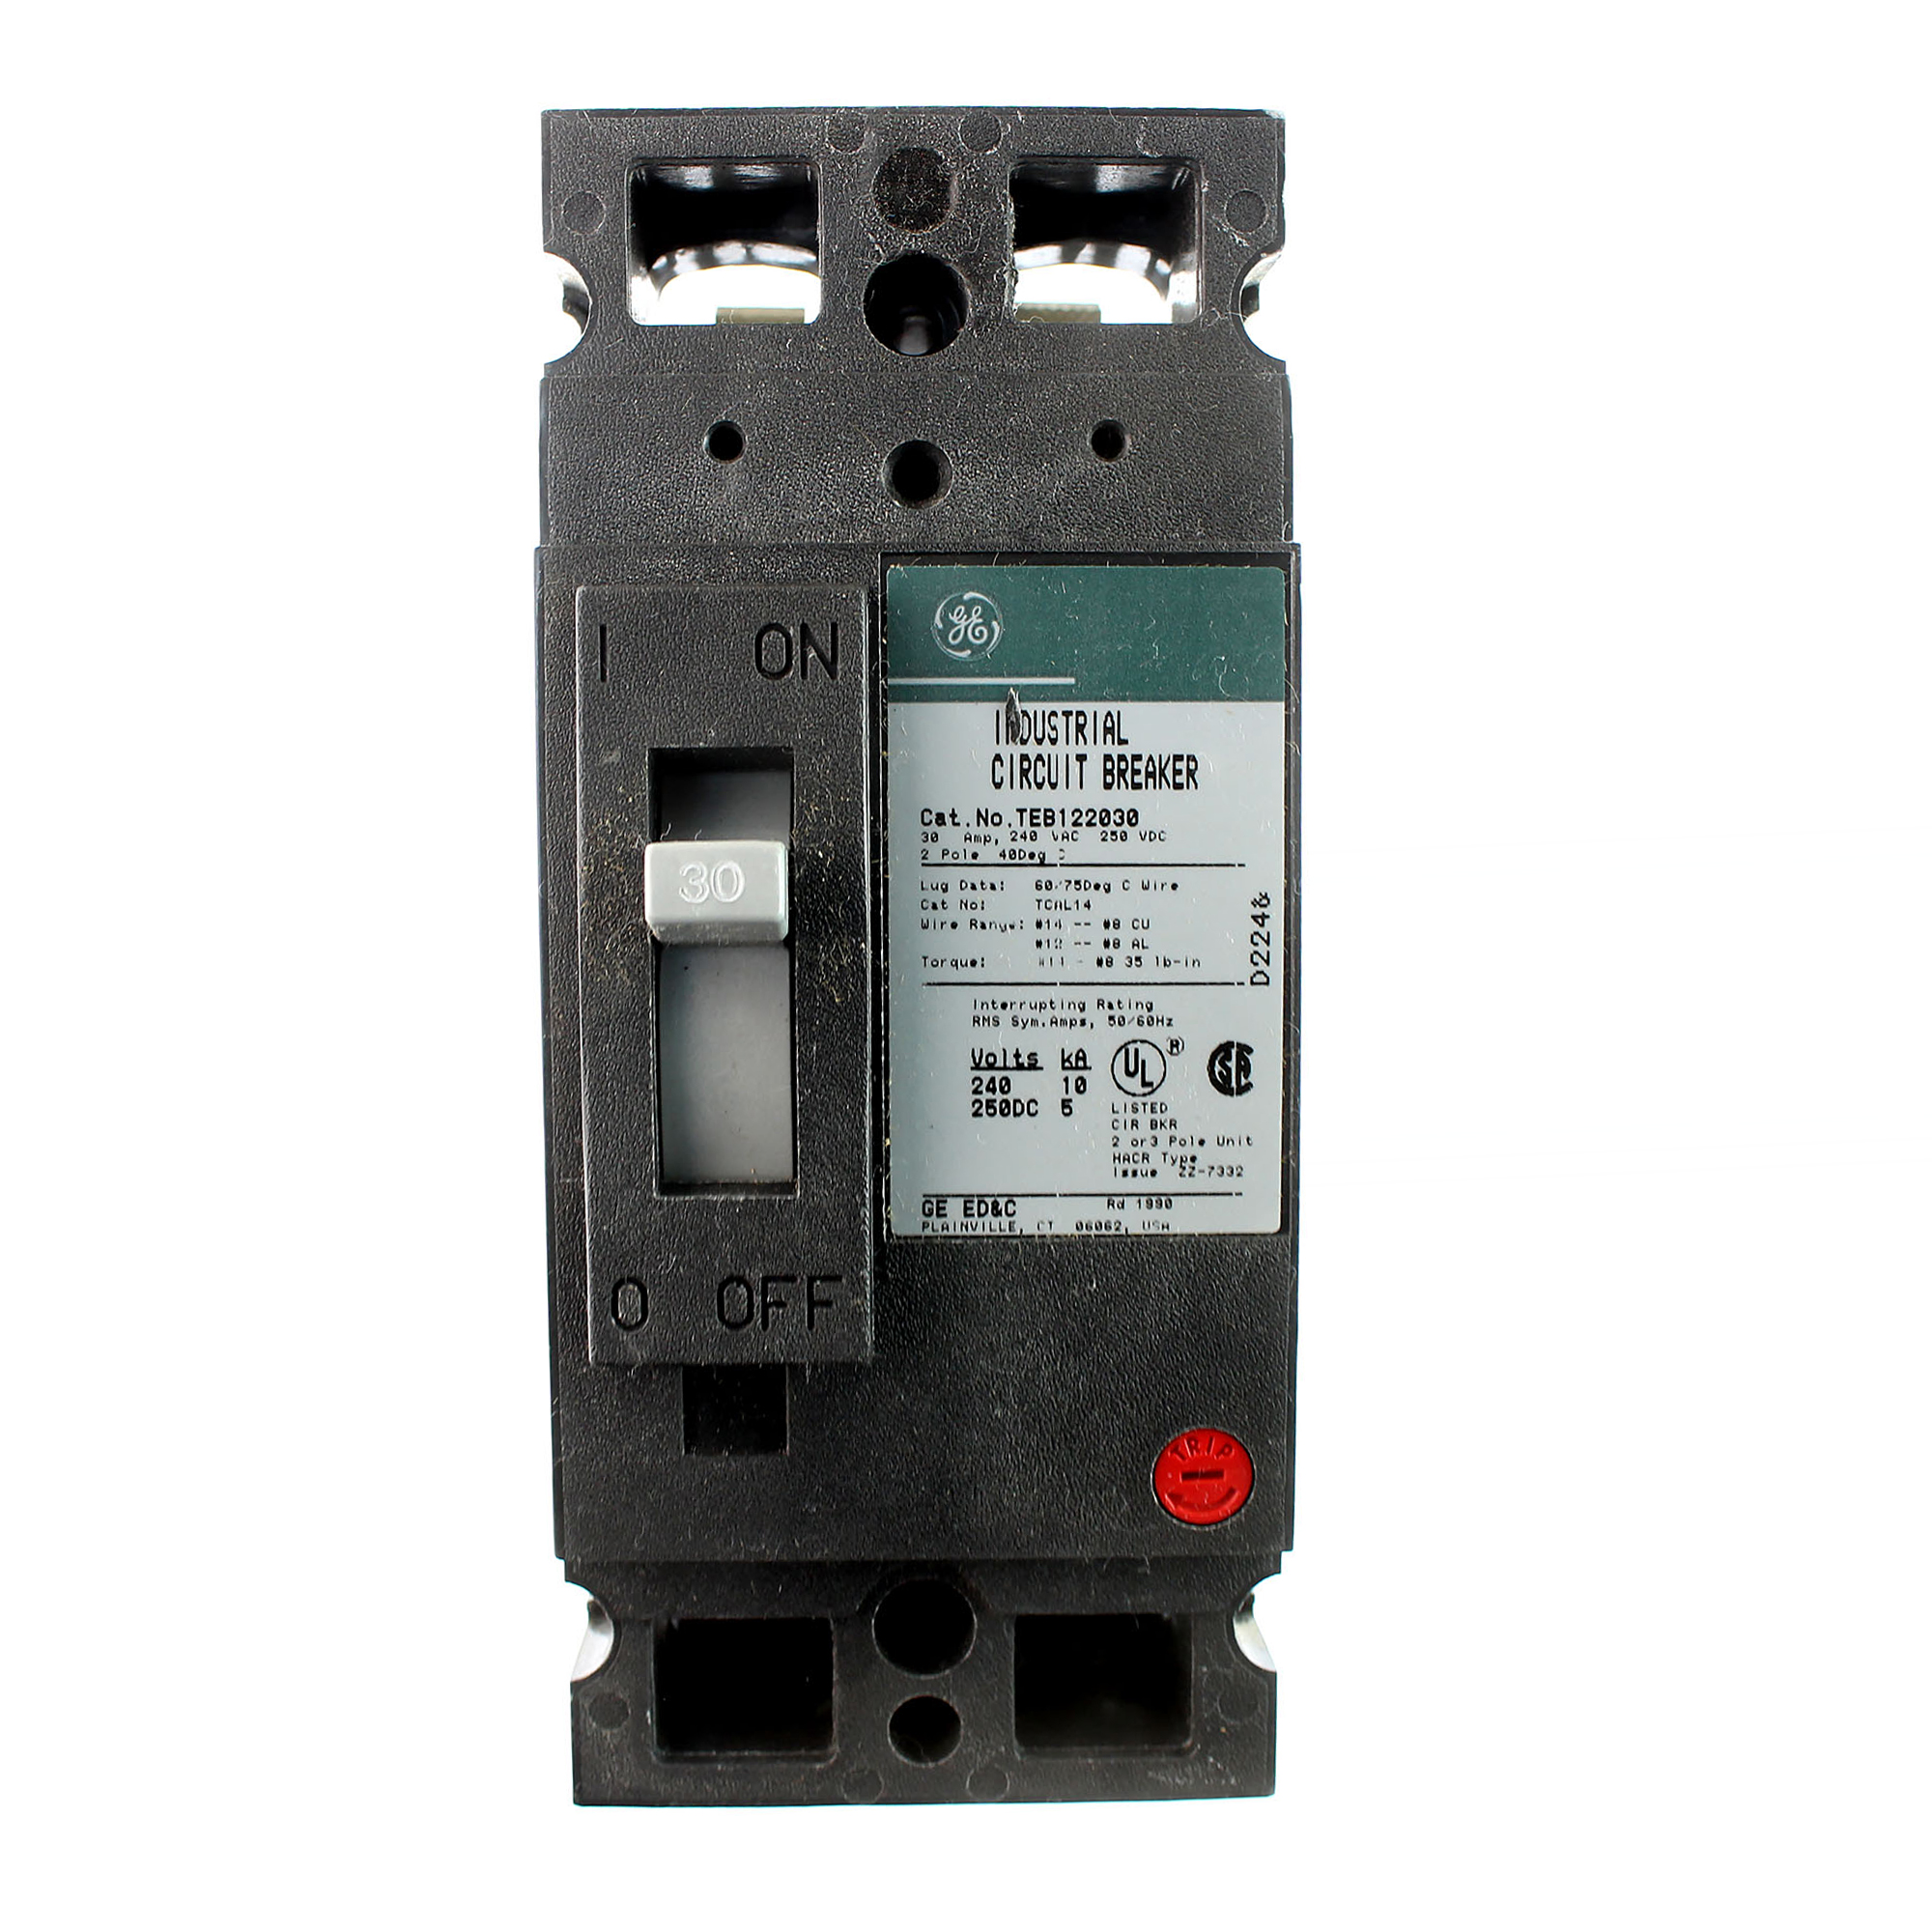 GE TEB122030 Mag-Break Industrial Electric Circuit Breaker 30A 600V 3-Pole